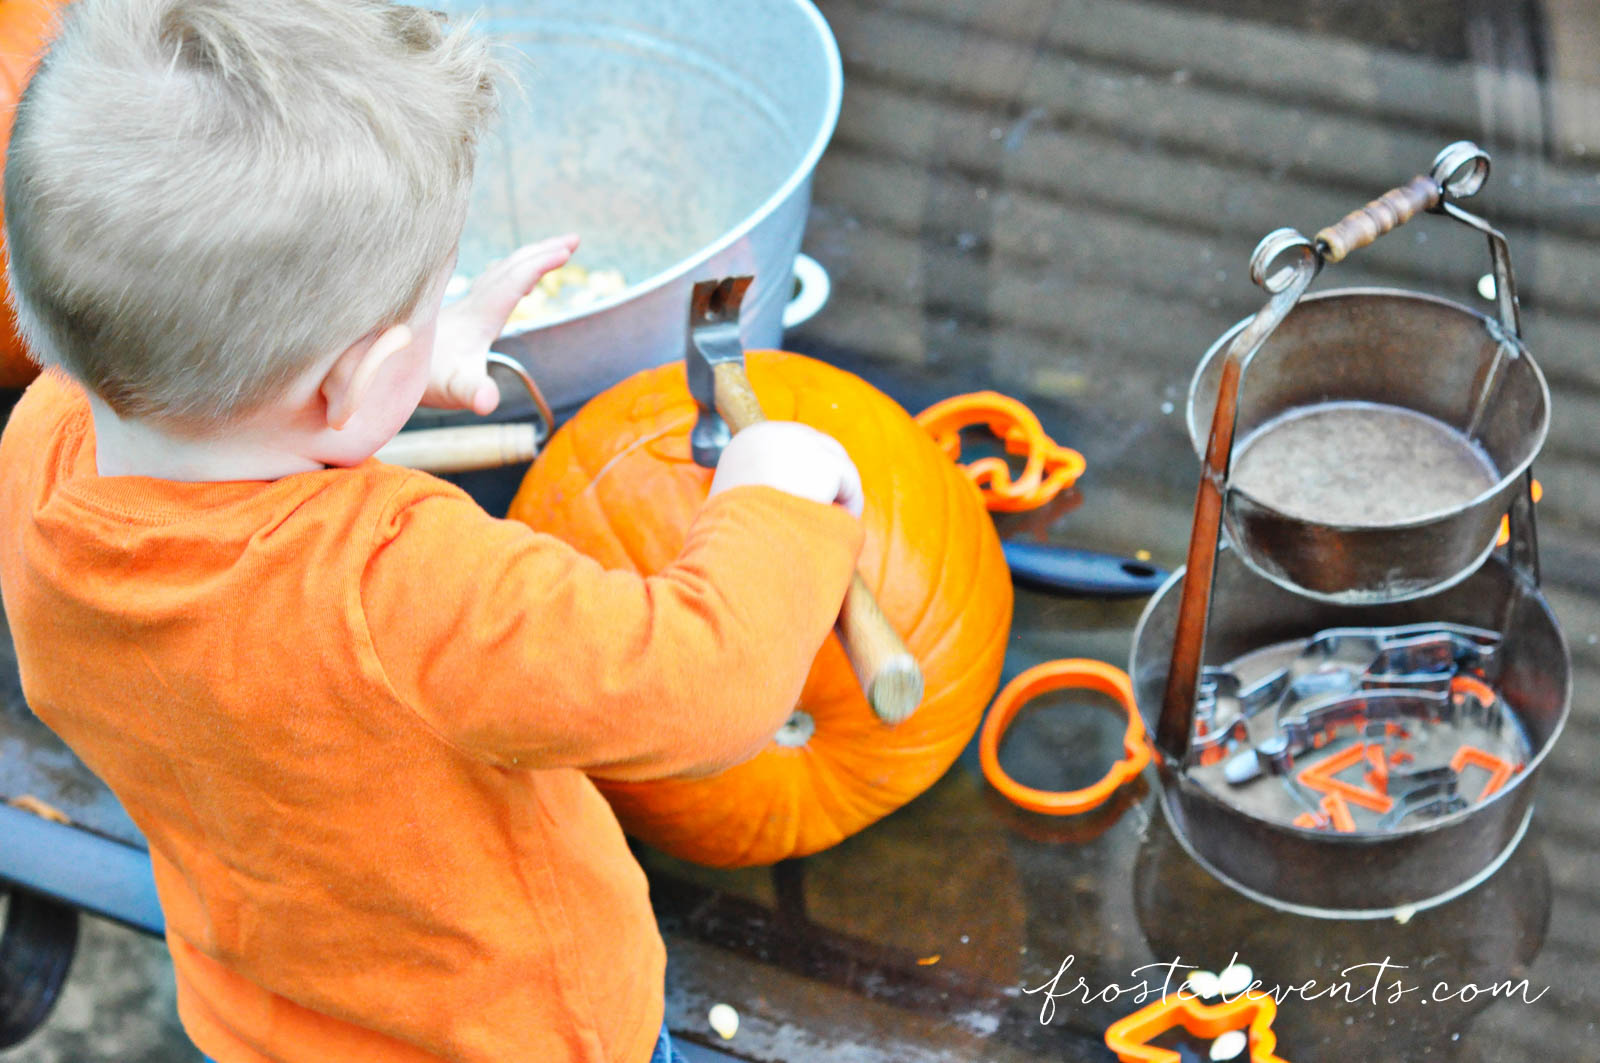 Halloween Craft: Cookie Cutter Games advise